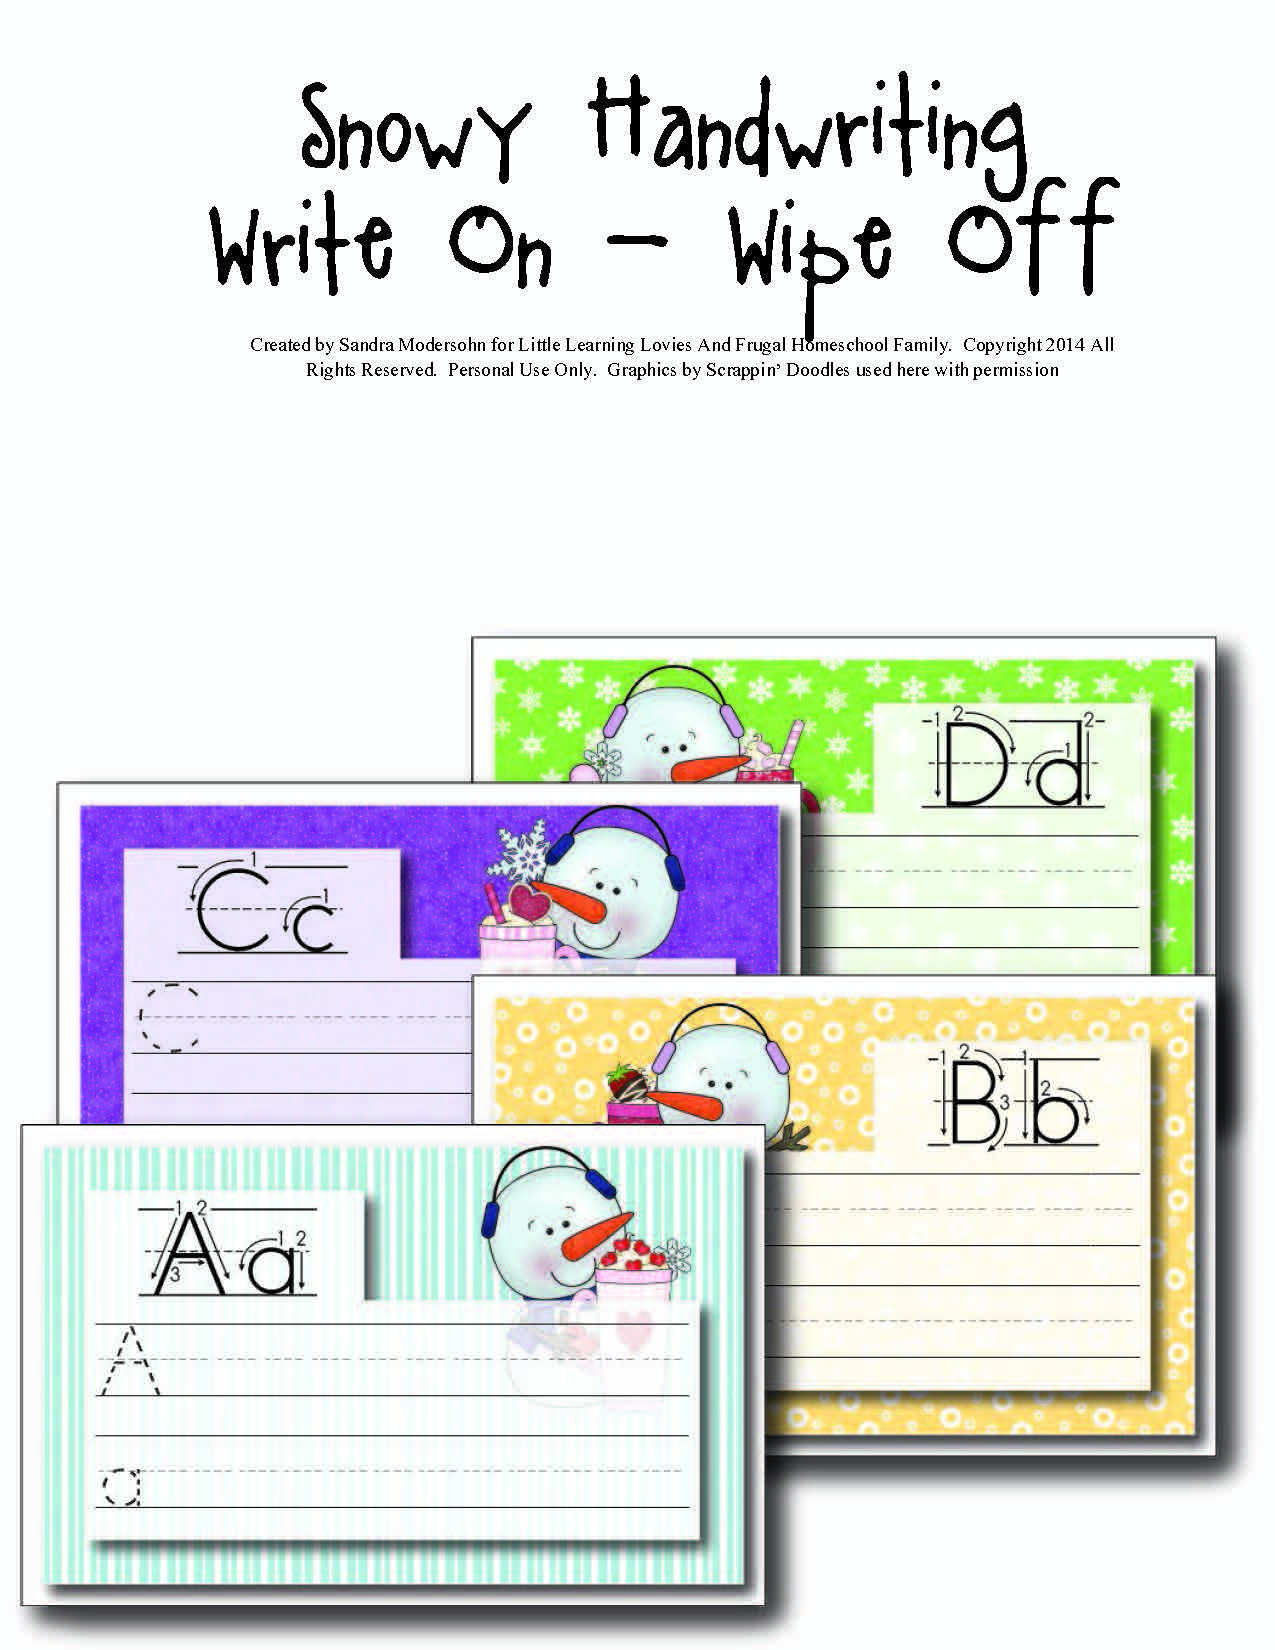 Make Handwriting Practice Fun This Winter With These Free